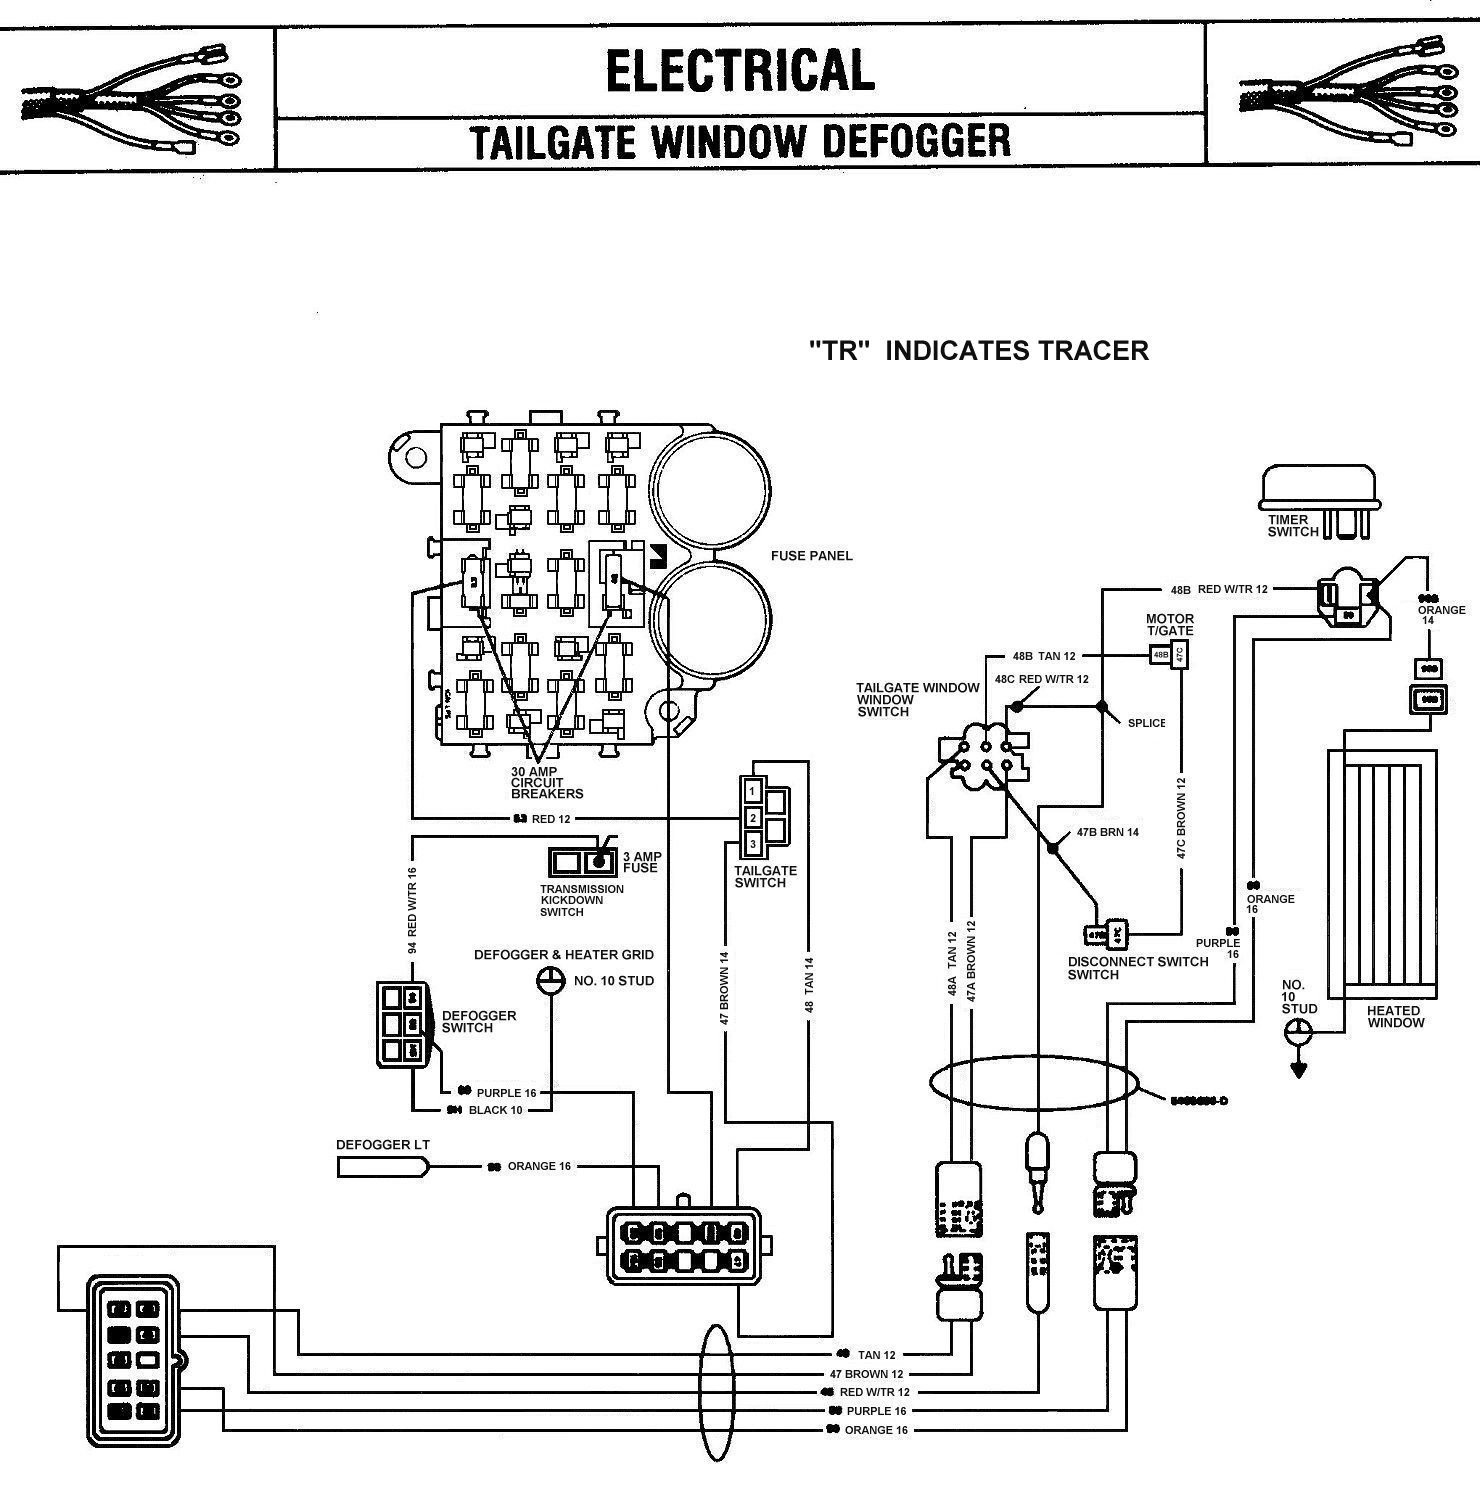 wiring diagram 1989 gmc 3500